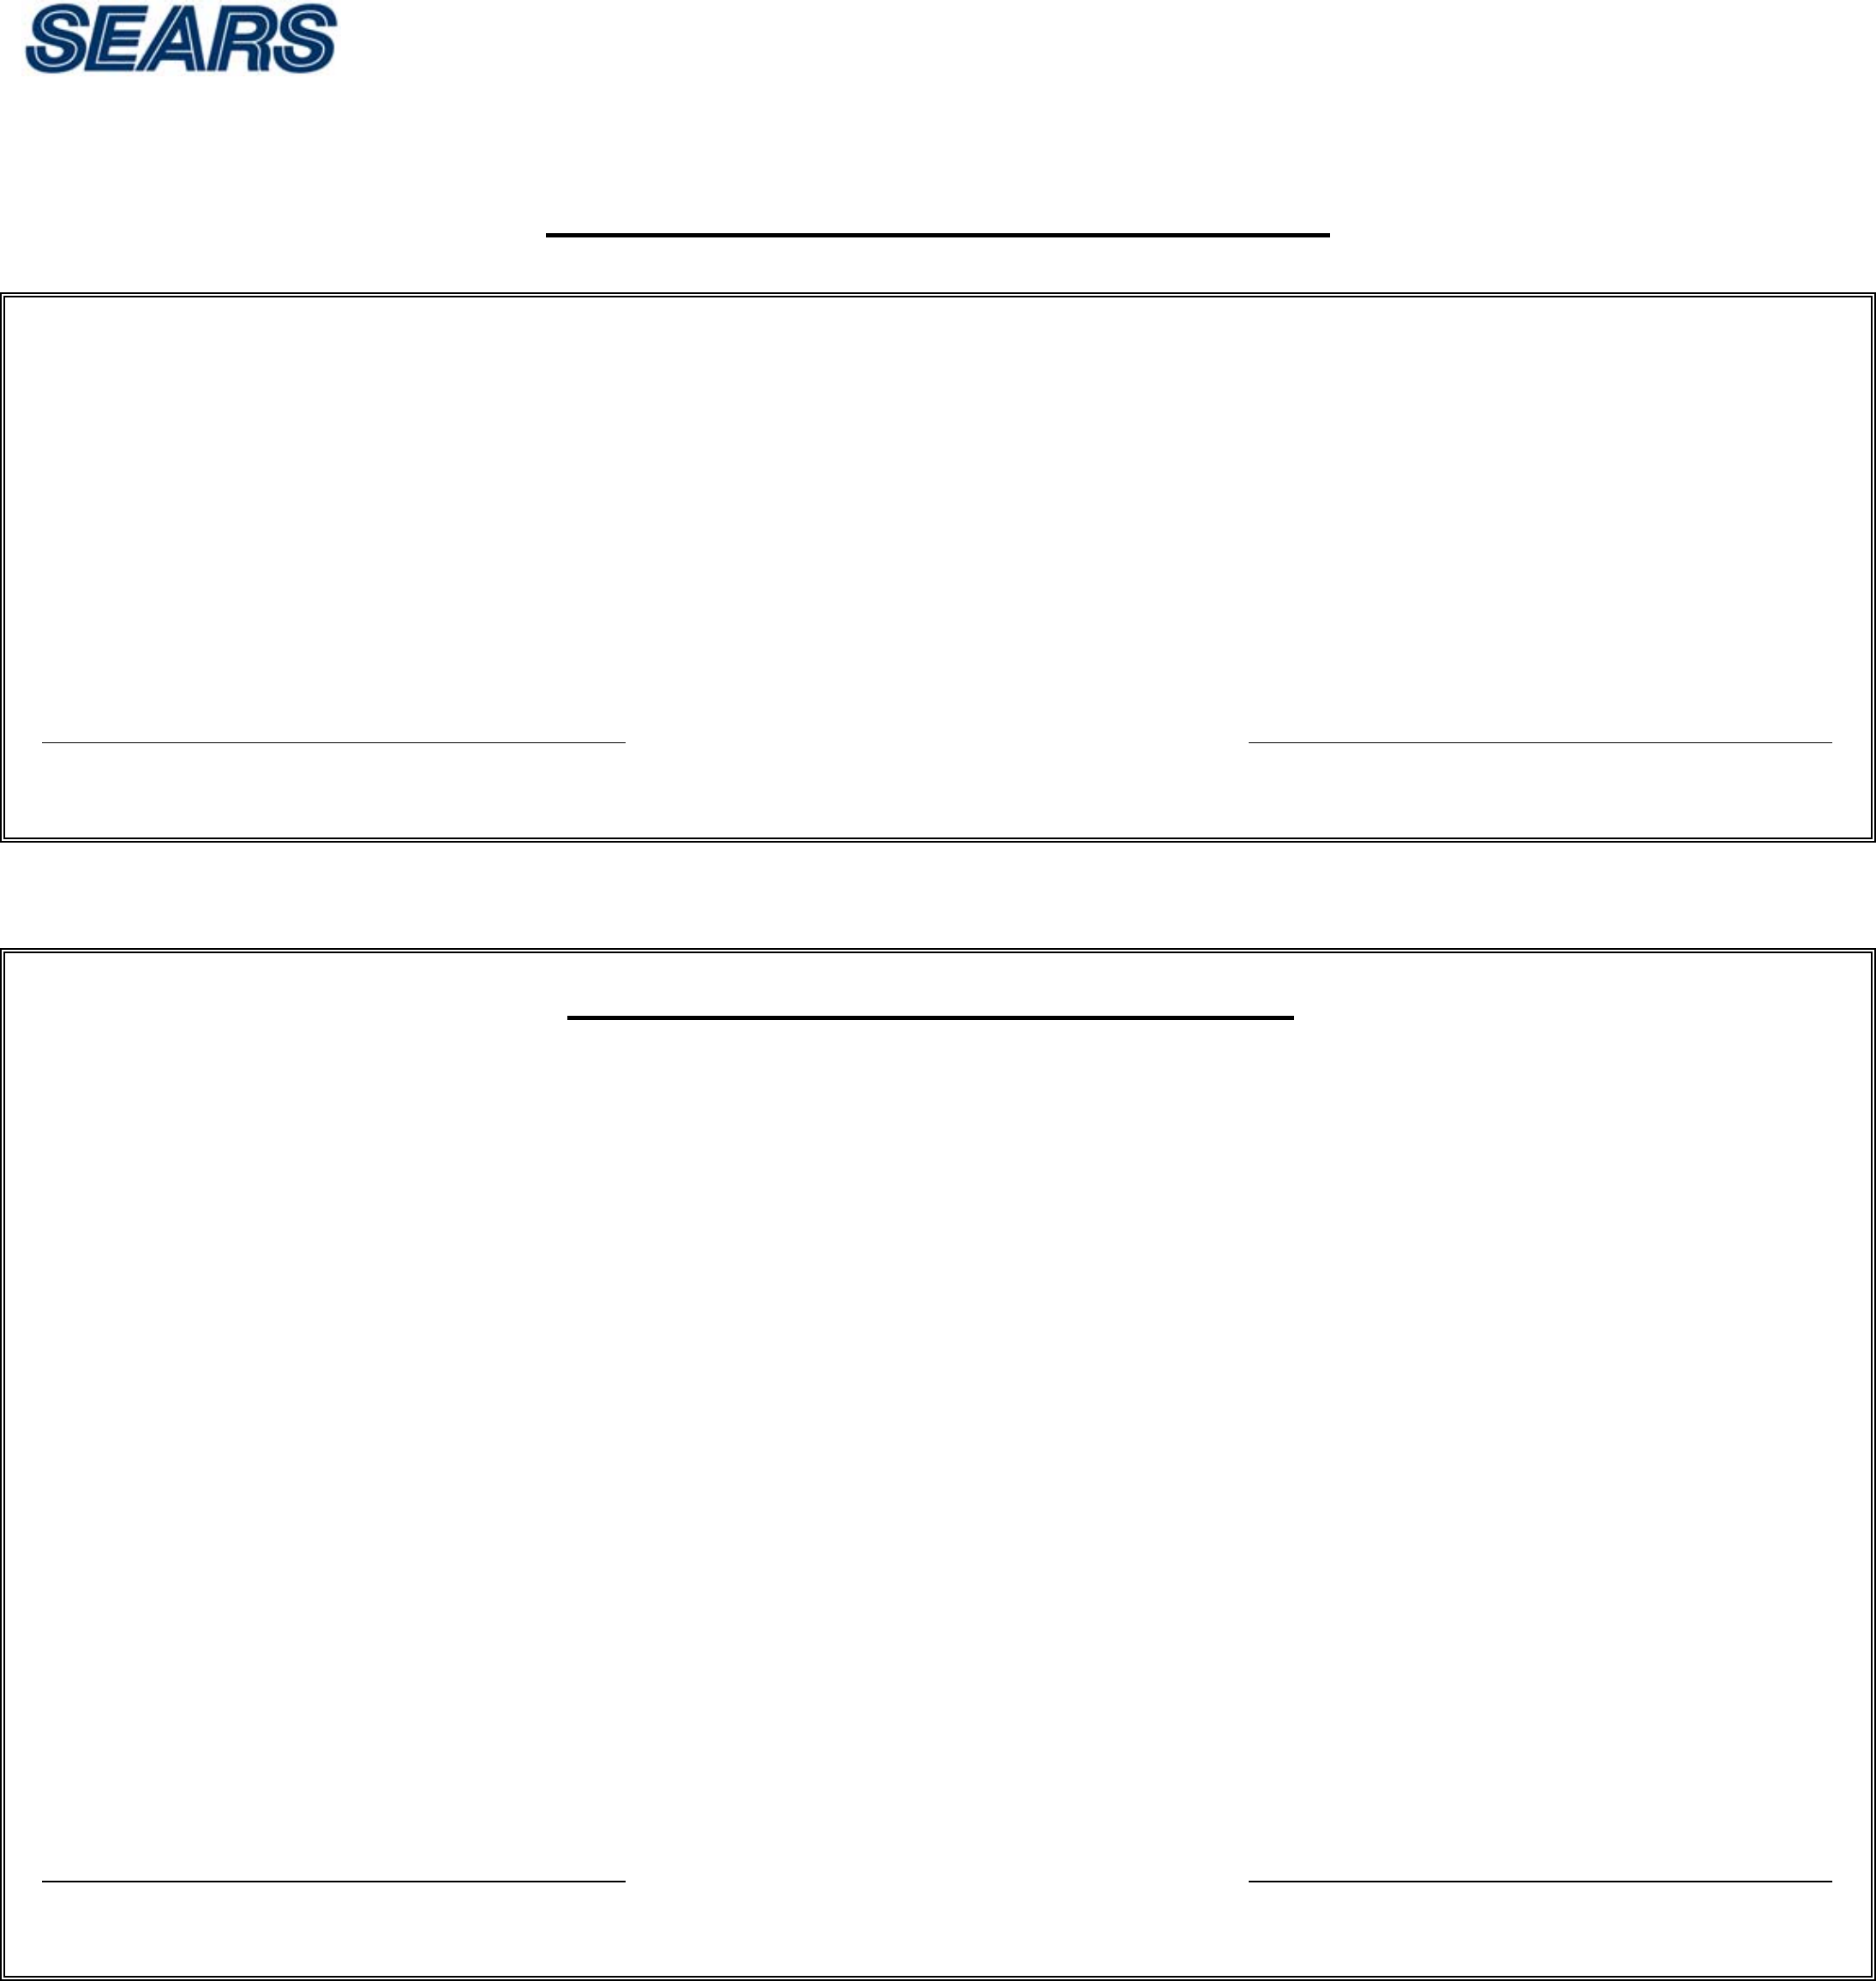 Sears application for employment form free download falaconquin